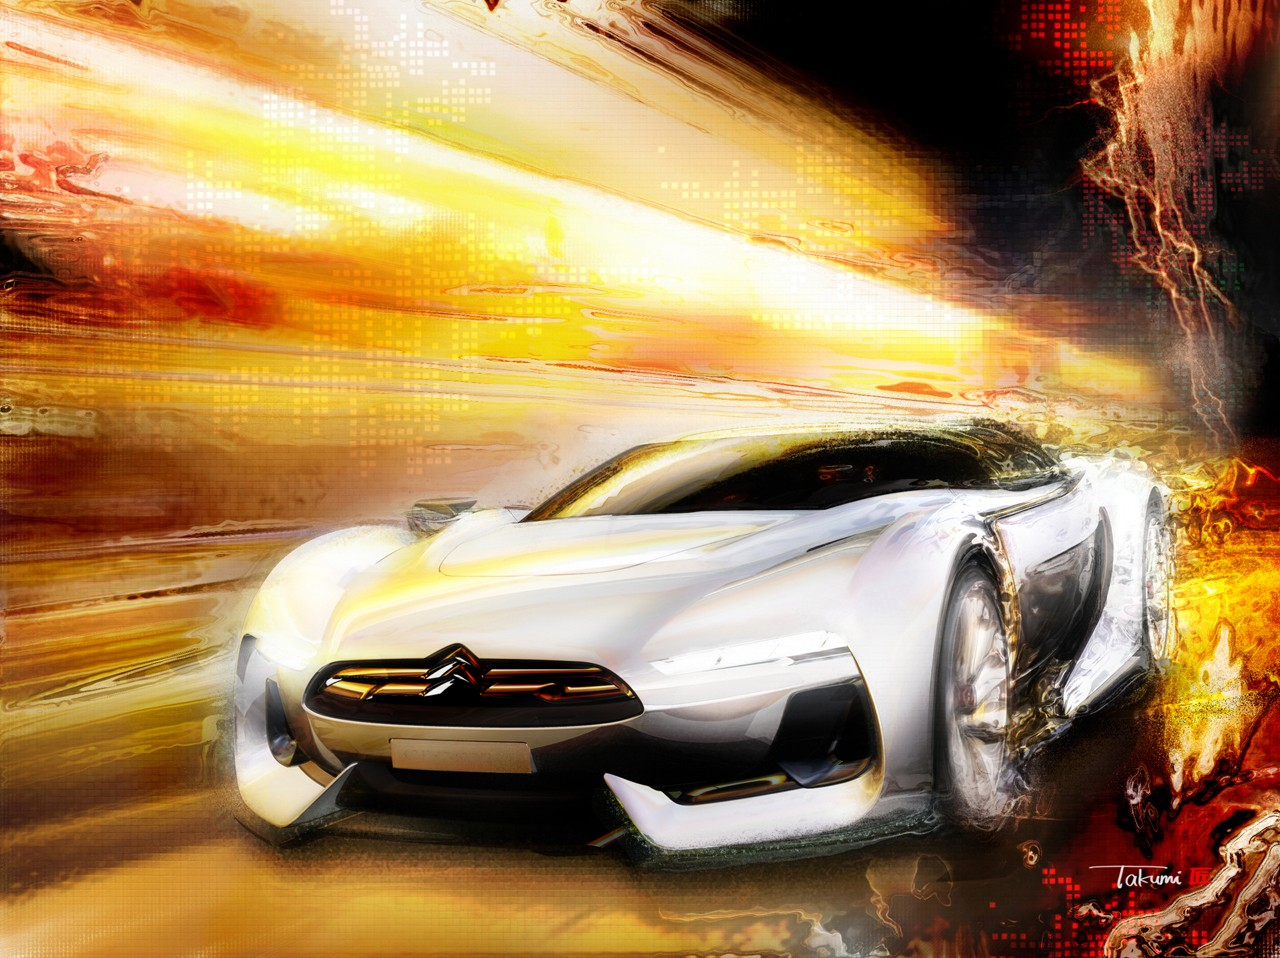 Citroen GT Exotic Pictures Galleries Wallpaper For Ipad